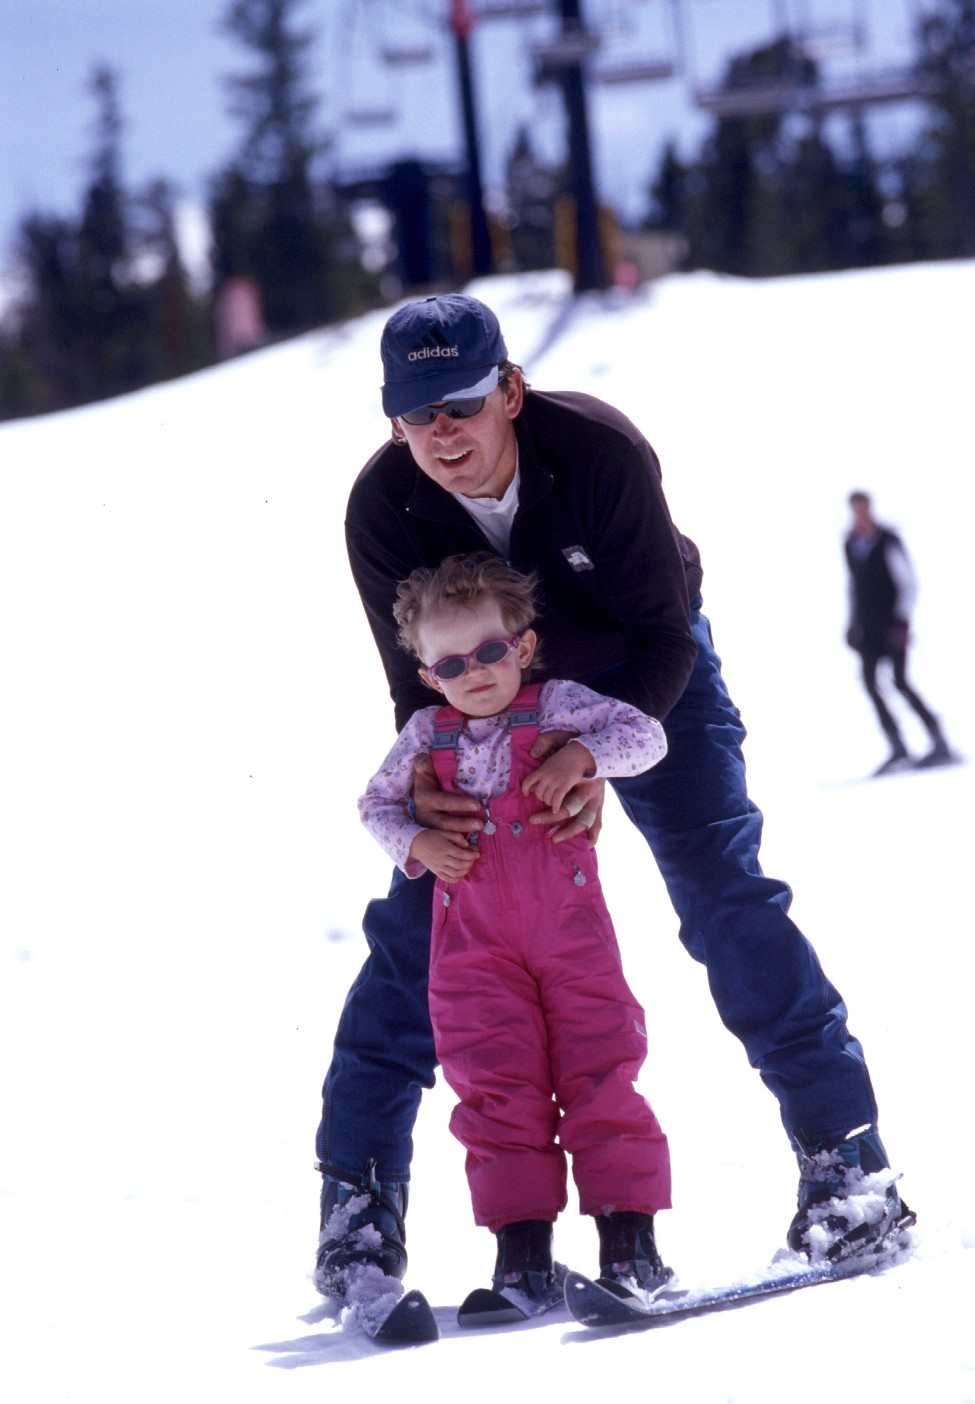 Little girl getting skiing lesson at Eldora, CO.